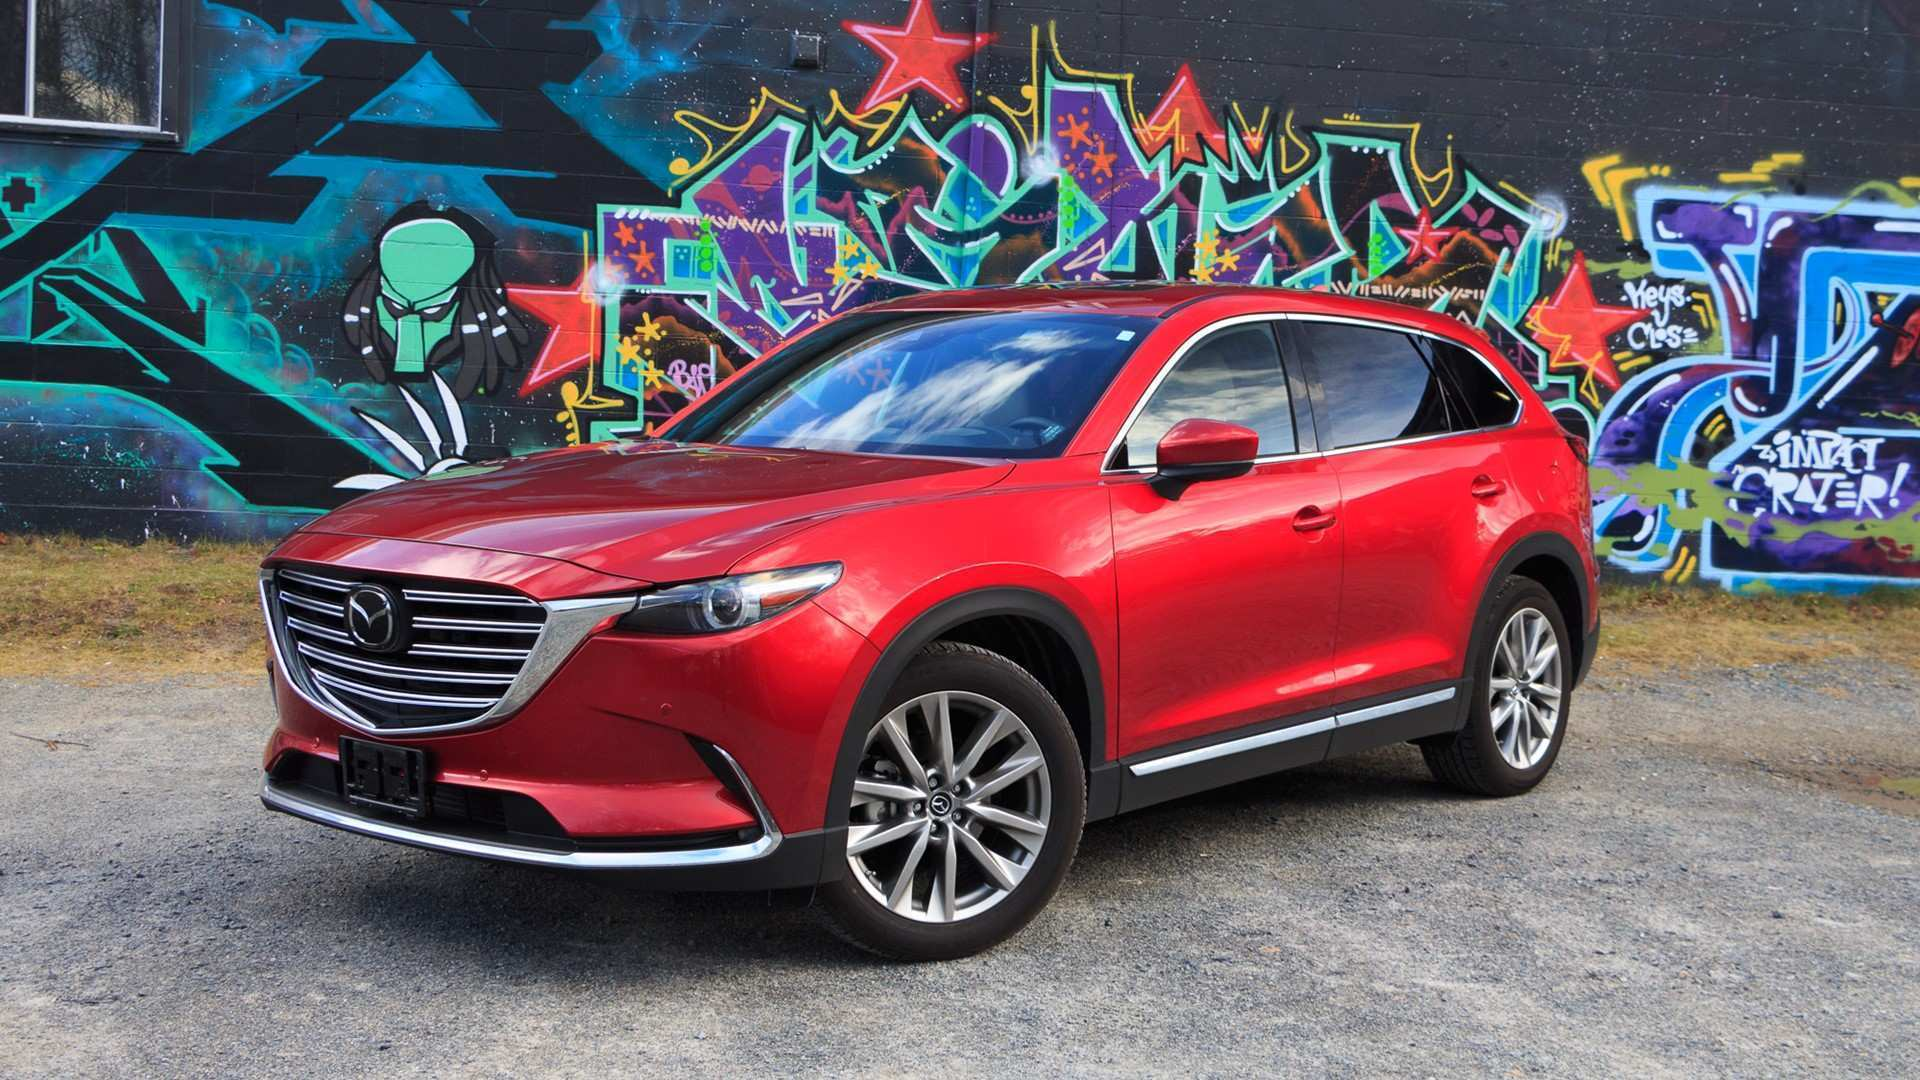 65 The 2019 Mazda CX 9 Research New